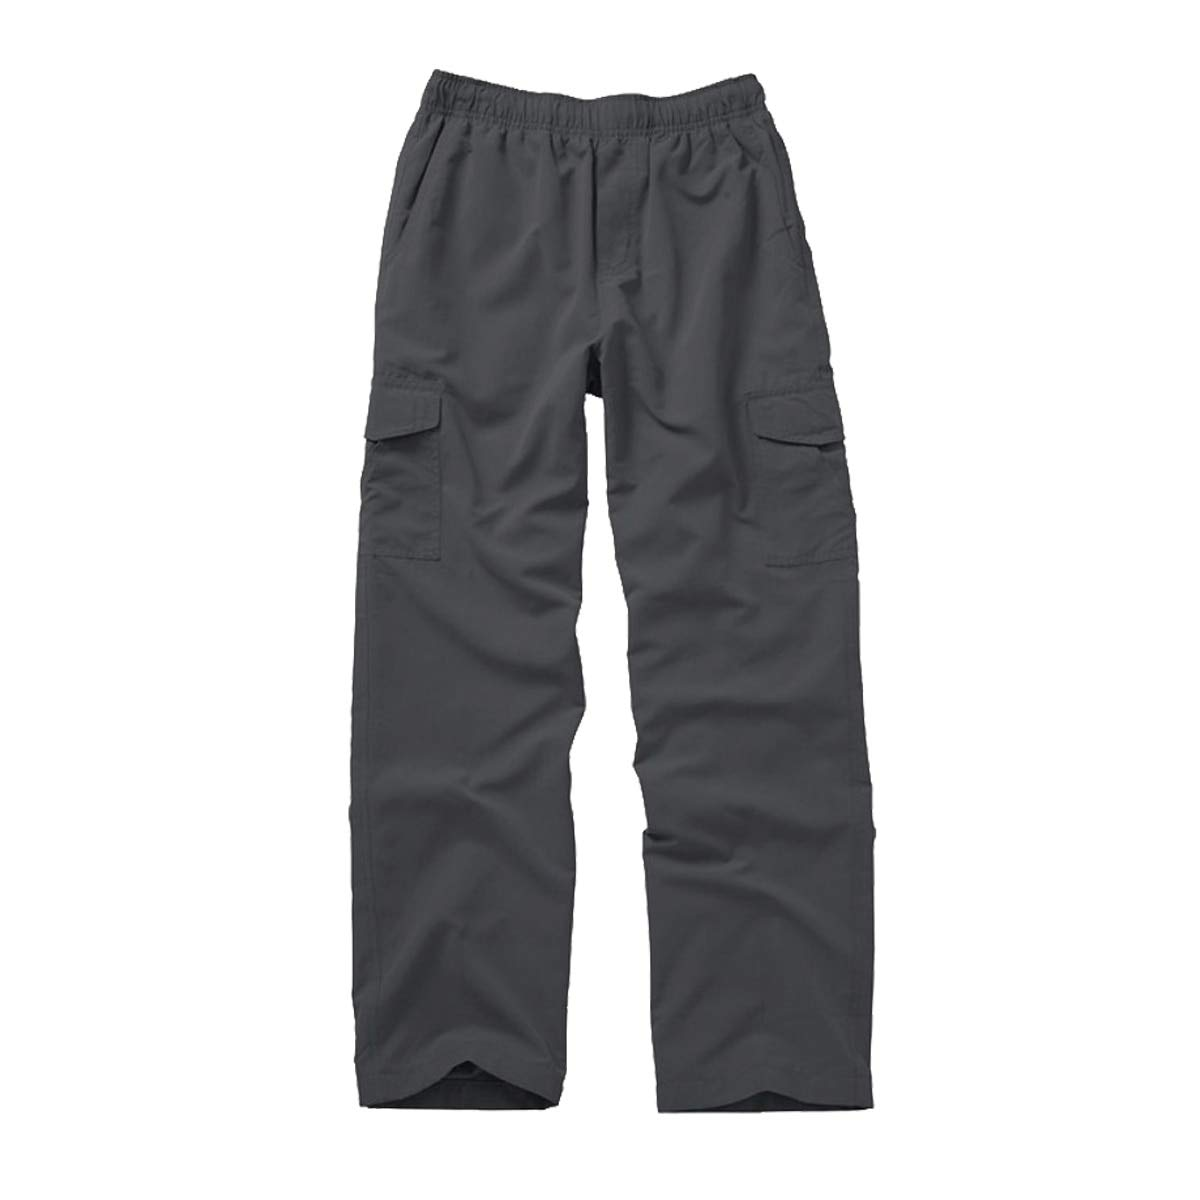 Wes and Willy Metal Pull On Cargo Pant